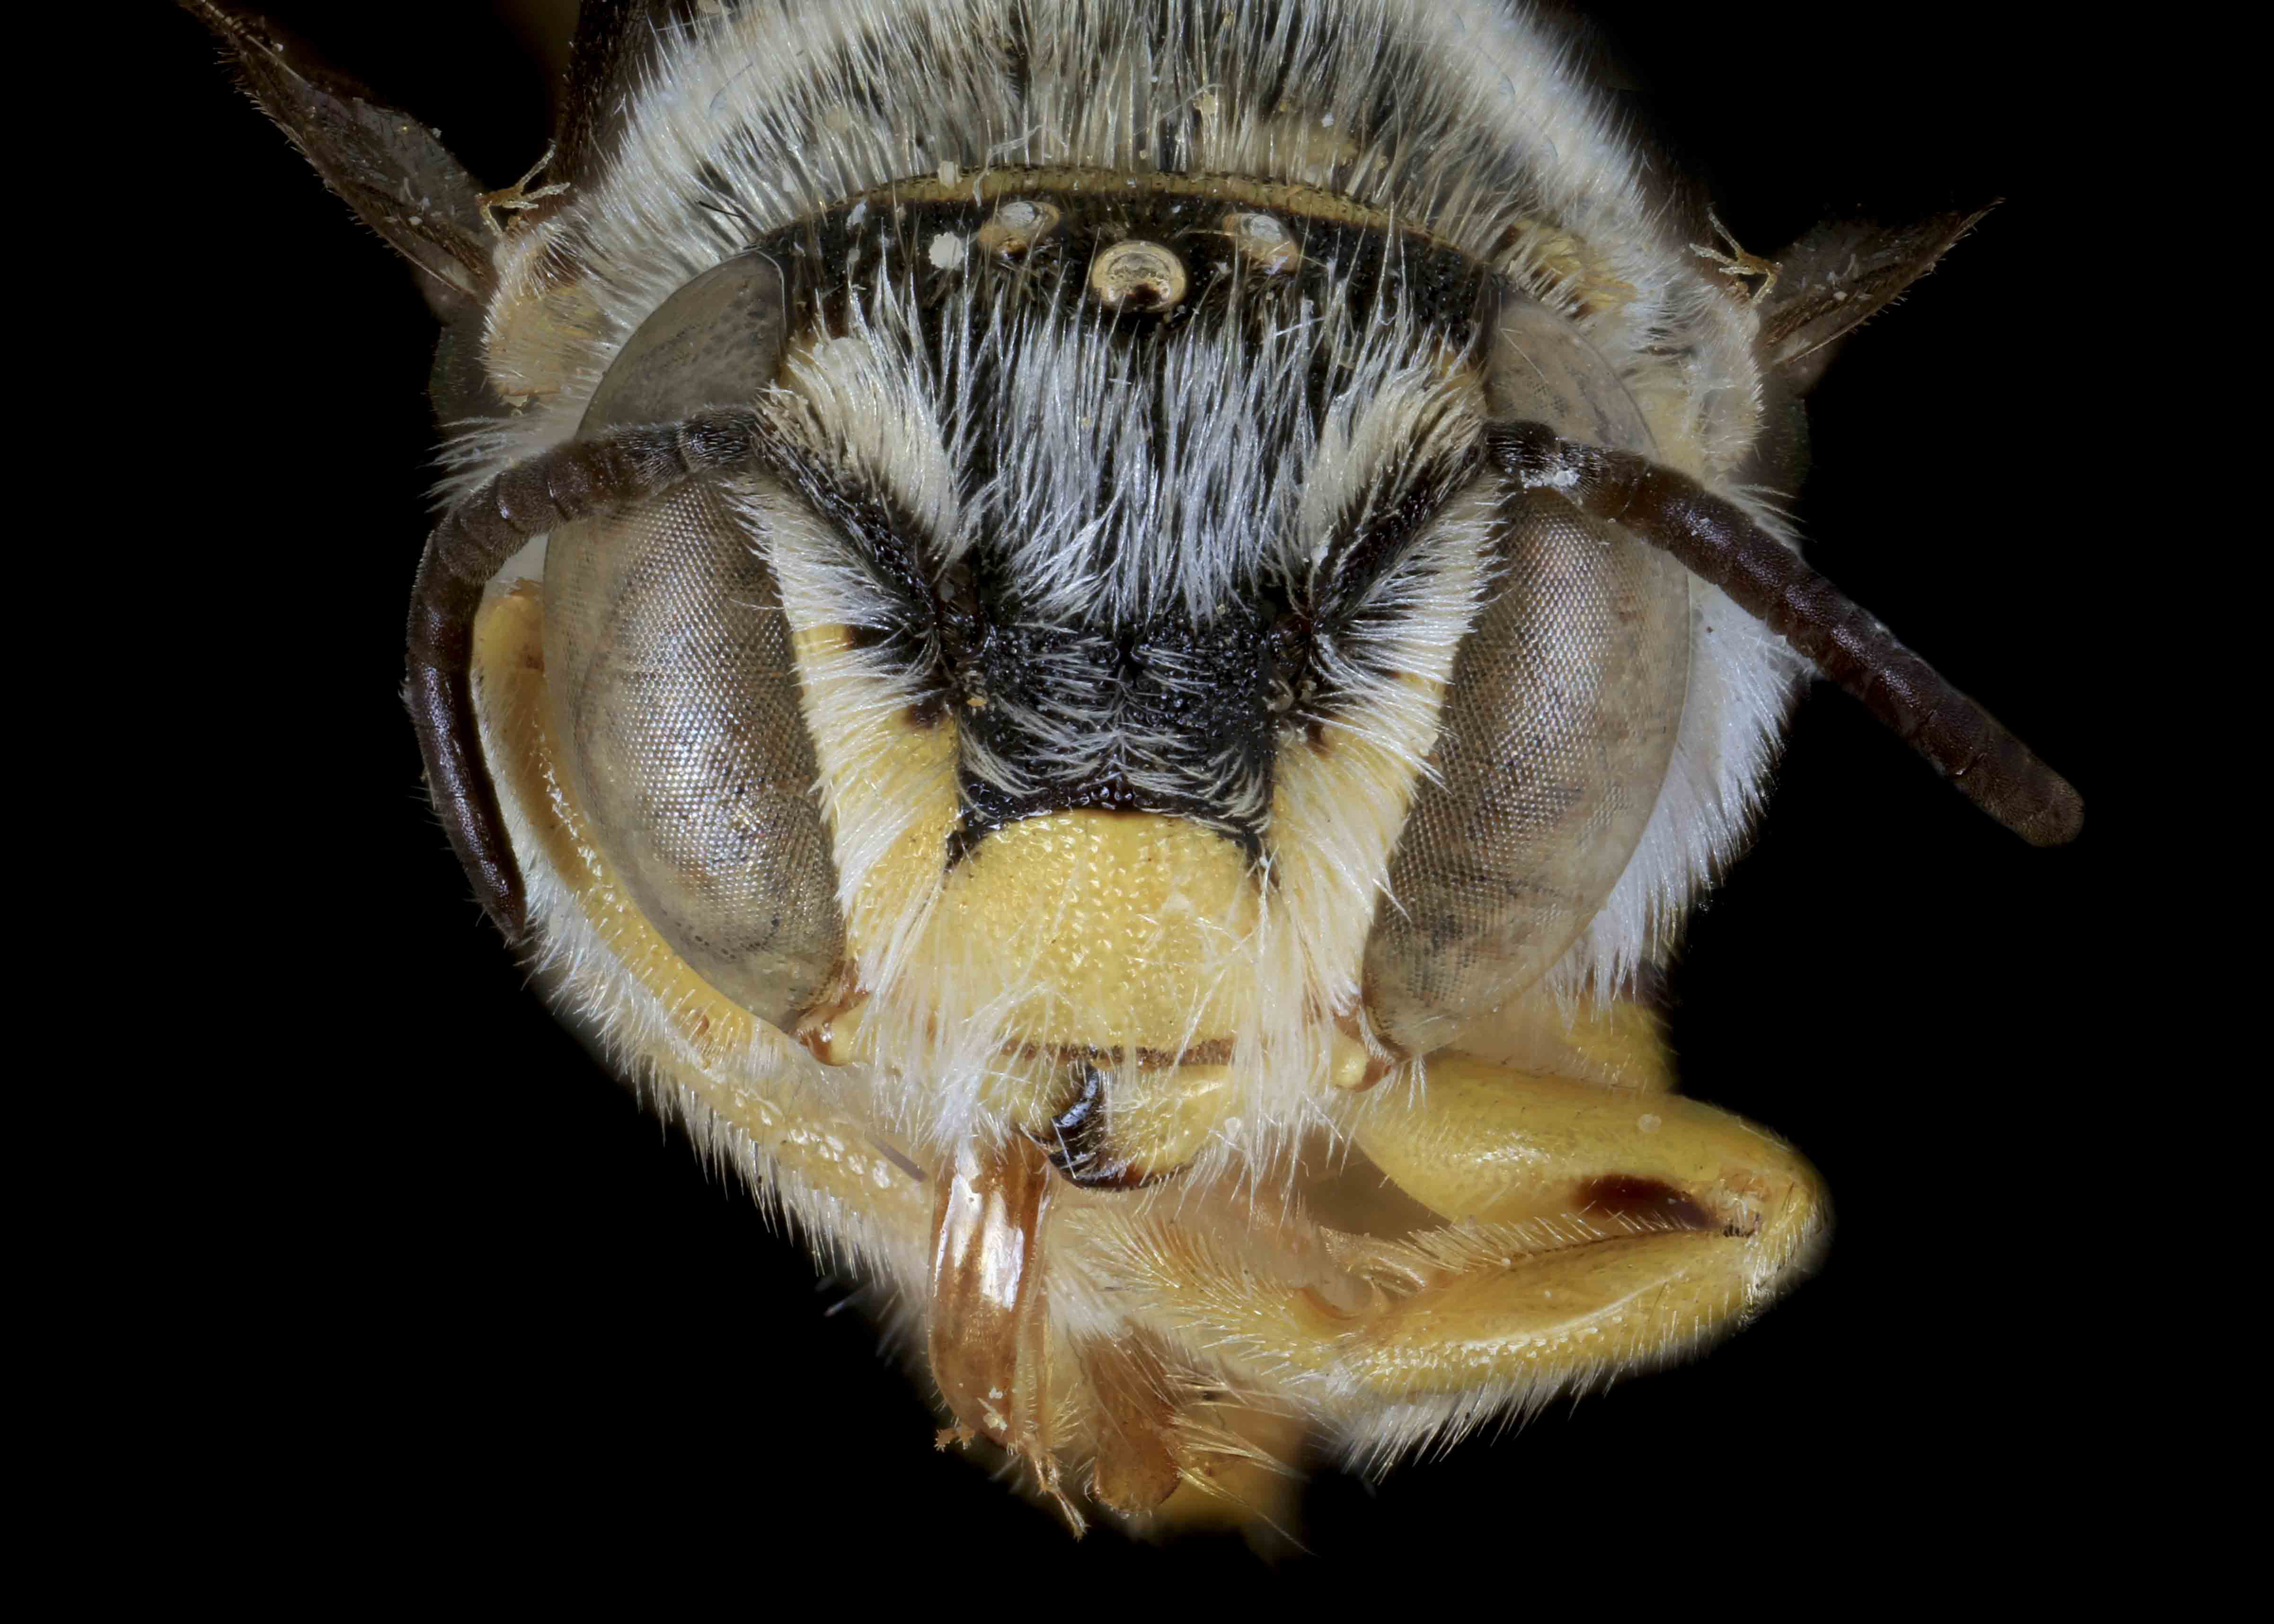 Fig 1.&nbsp;<em>Acedanthidium&nbsp;</em>sp. male face.  Photo: C. Ritner  &copy; Division of Entomology, University of Kansas Biodiversity Institute